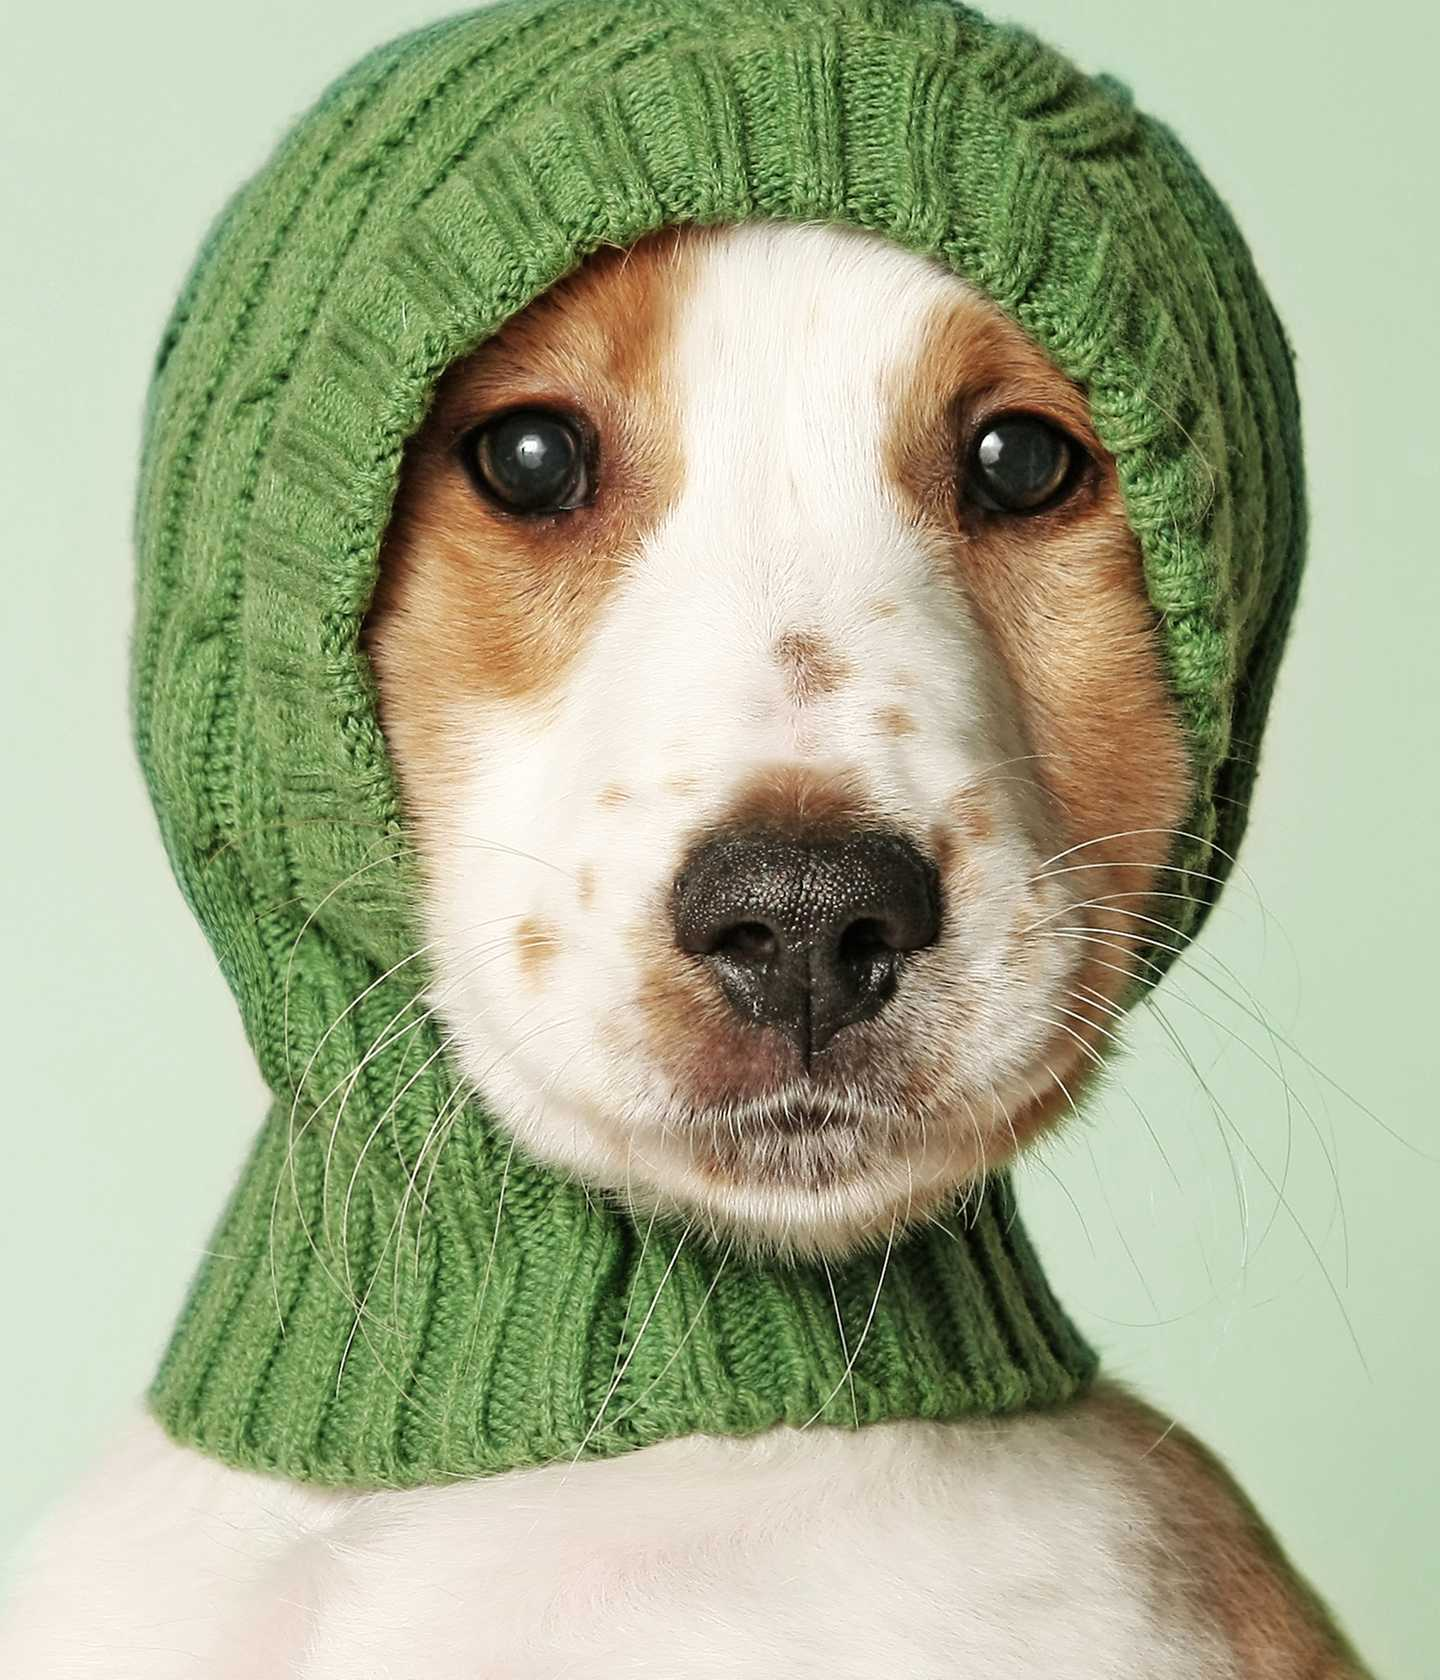 Puppy wearing a knitted cap